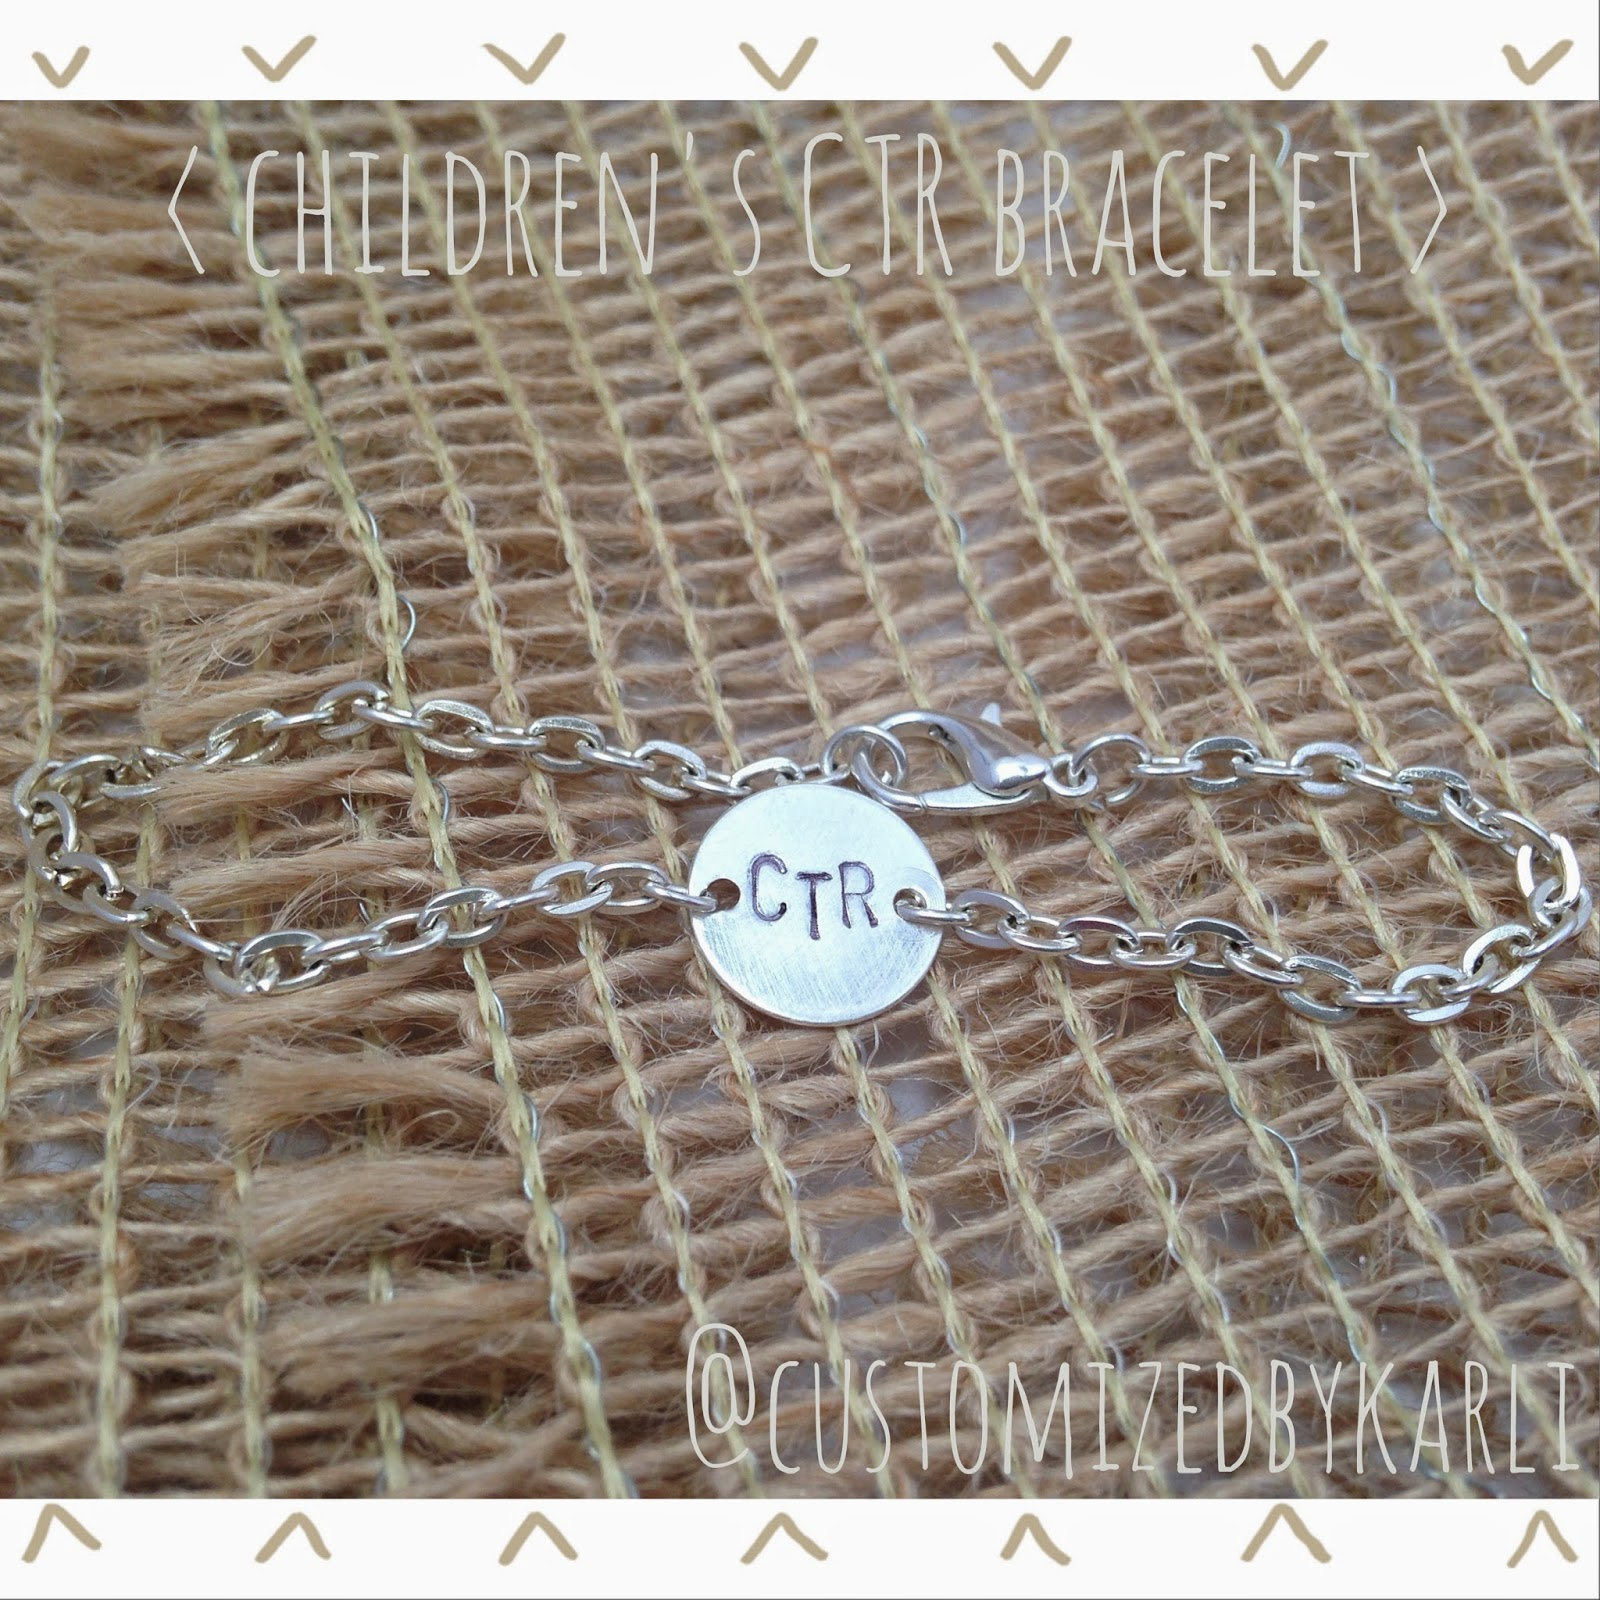 http://www.etsy.com/listing/184984787/simple-ctr-bracelet-hand-stamped-ctr?ref=shop_home_active_6